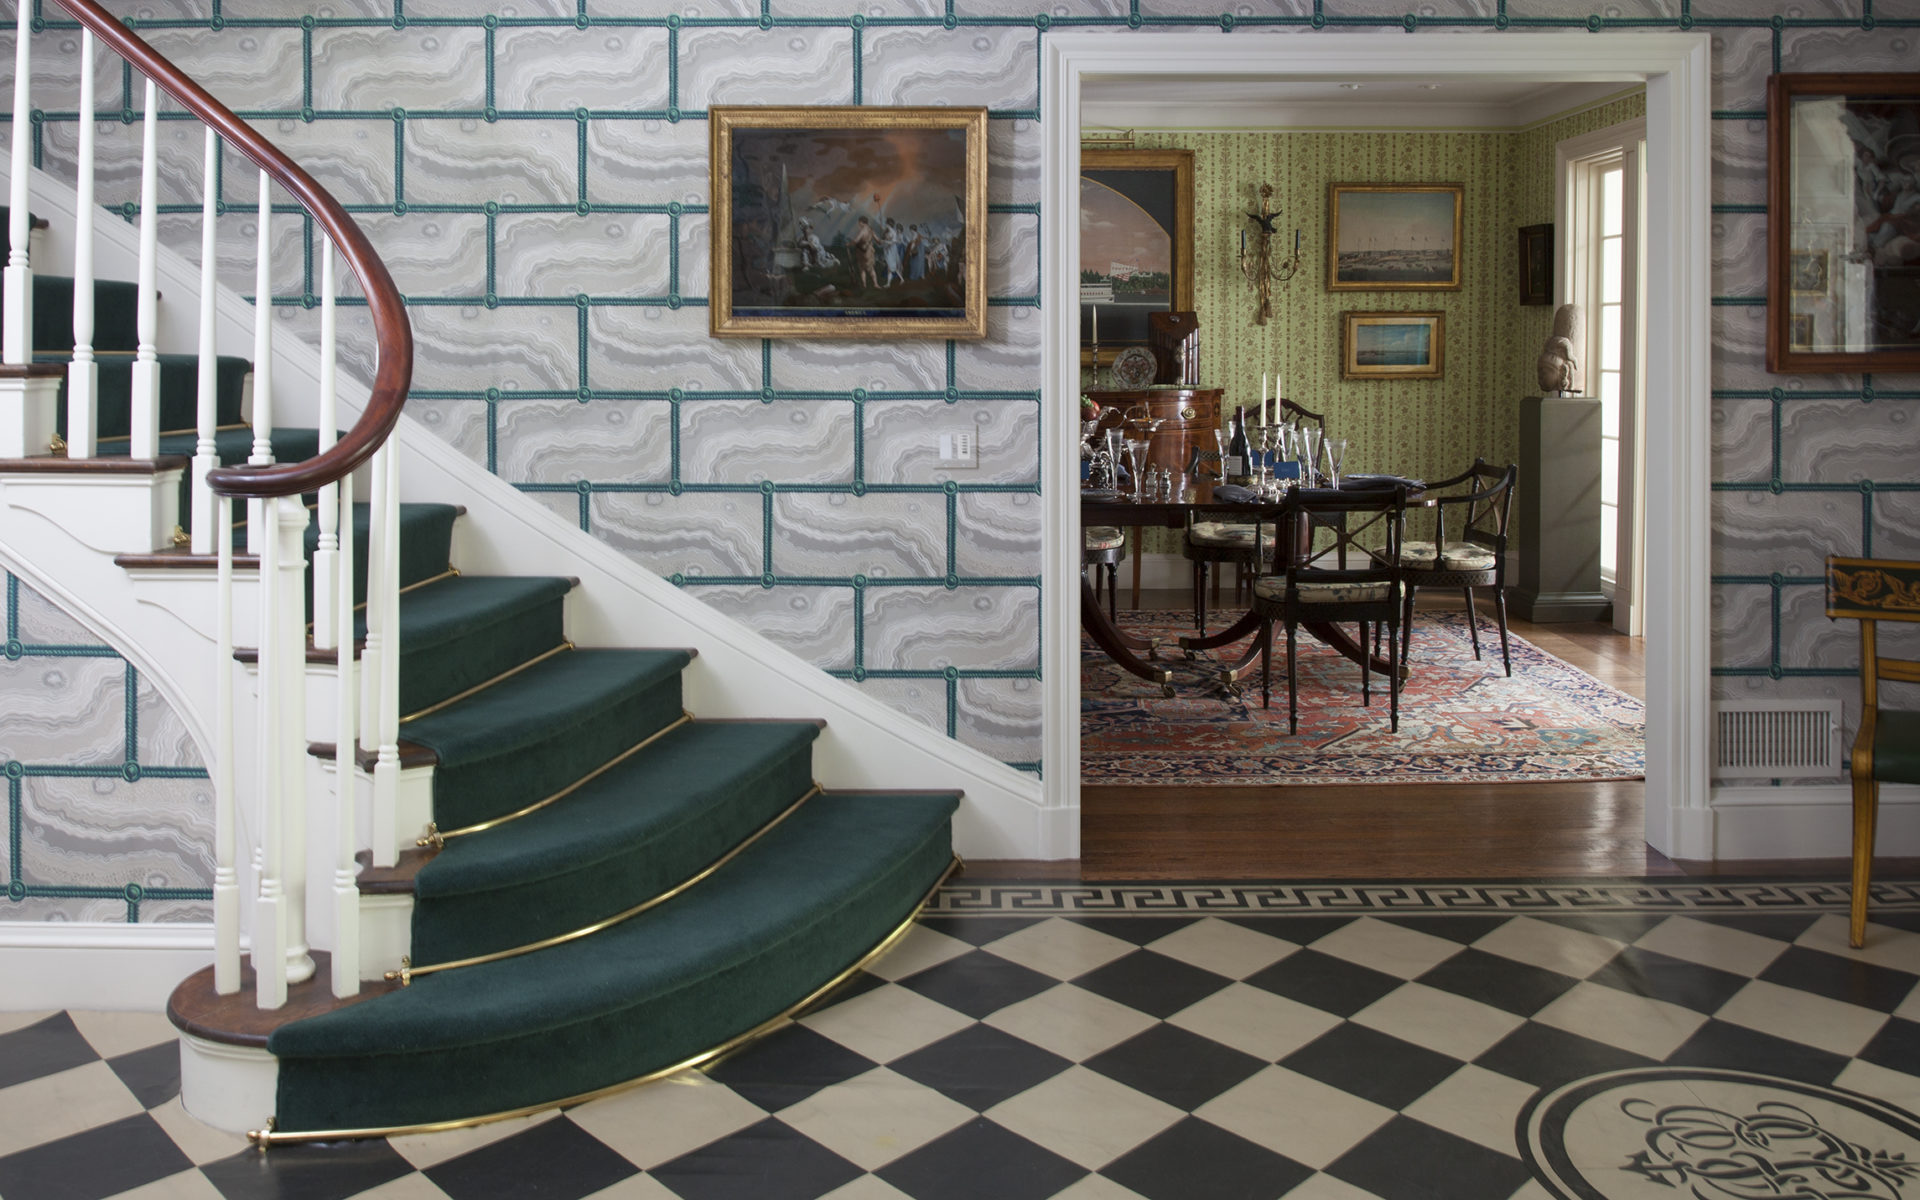 New Design Lessons from a Classic 19th-Century Decorating Book - Galerie